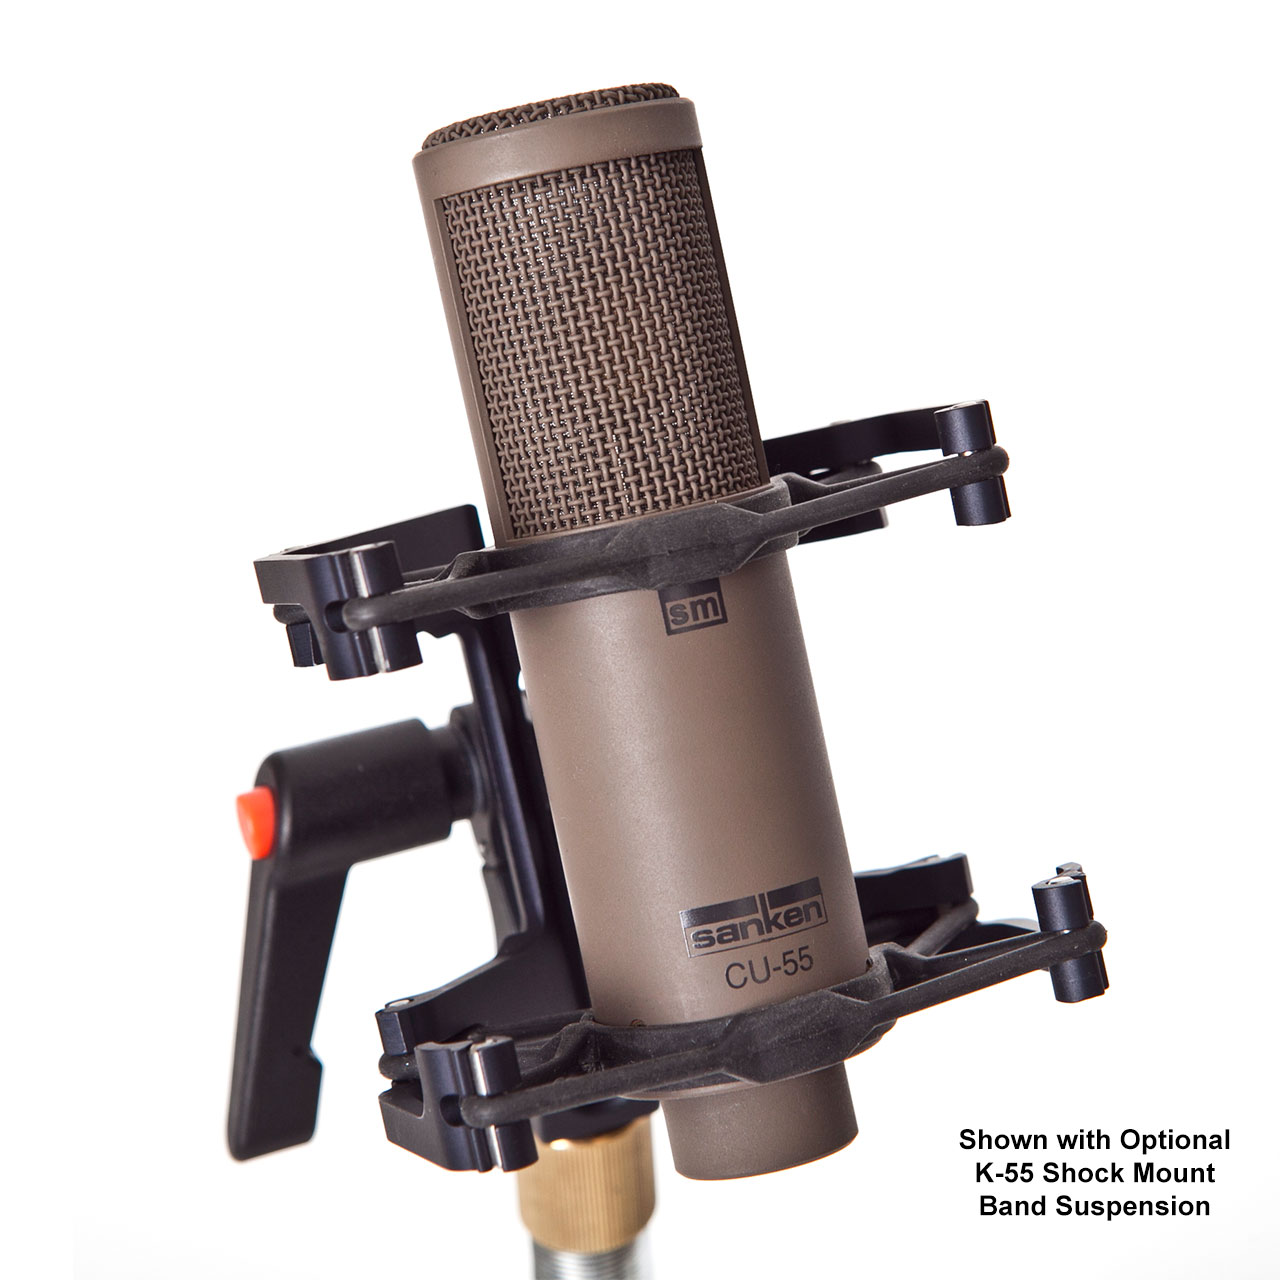 Sanken Chromatic CU-55 with Optional K-55 Shock Mount Band Suspension